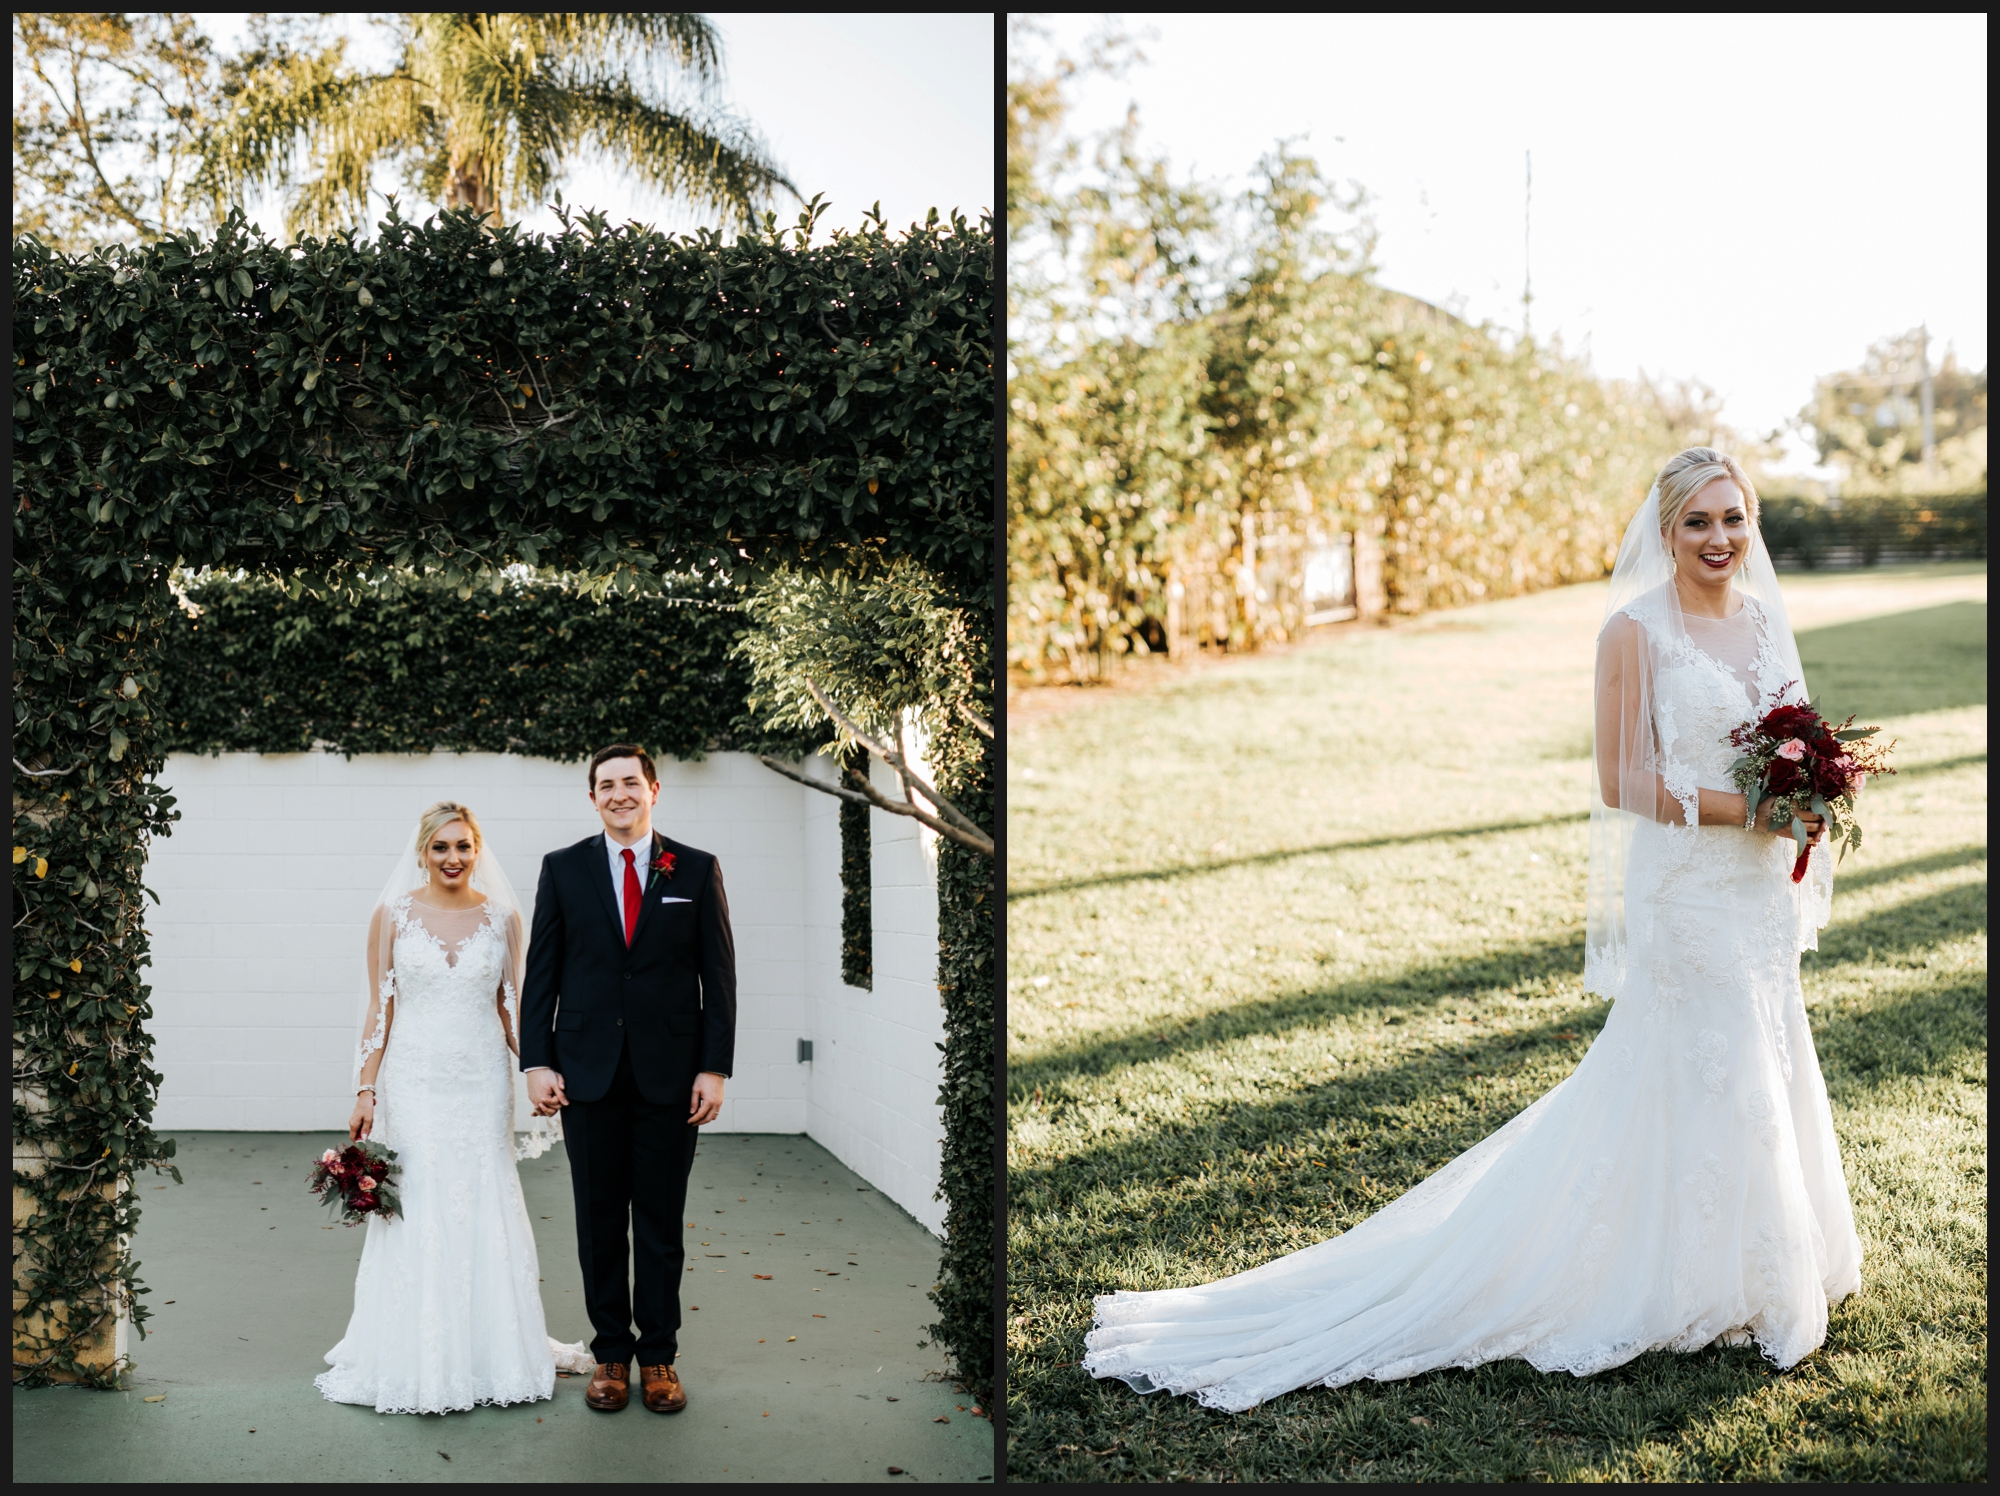 MitchandKatieOrlandoWeddingPhotographer_0011.jpg